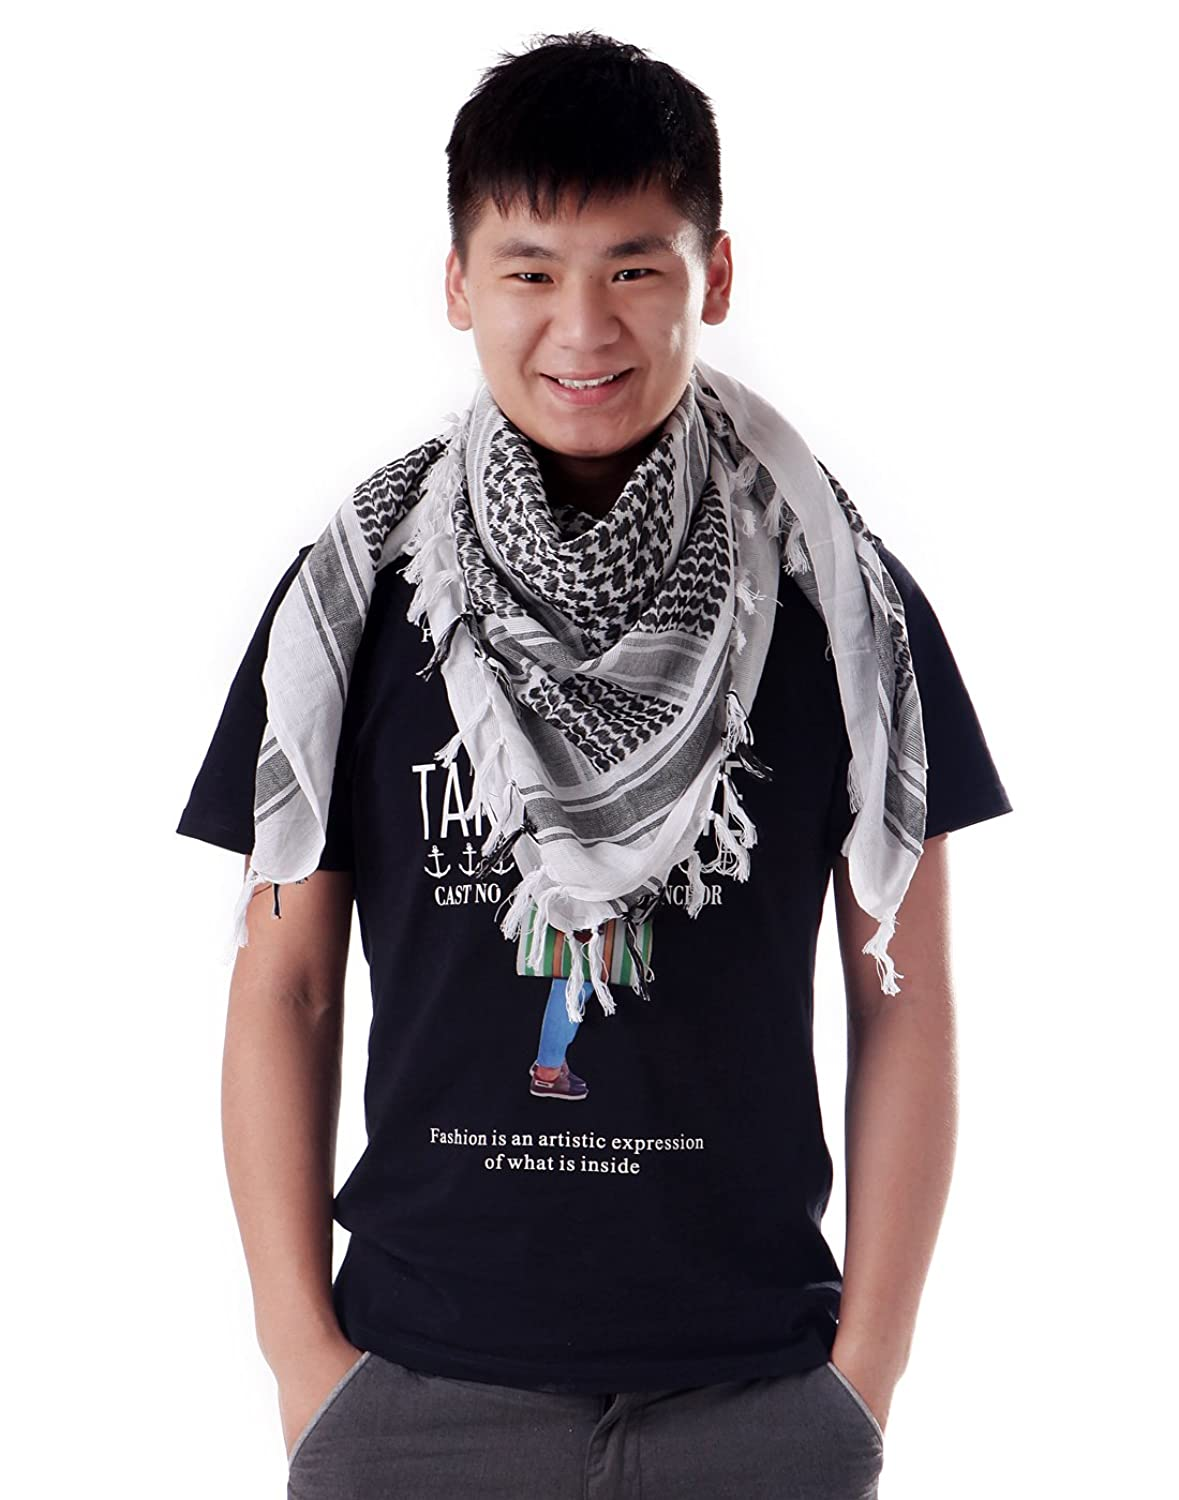 HDE Cotton Arab Desert Tactical Shemagh Keffiyeh Head Neck Cover Fashion Scarf (White) at Amazon Men's Clothing store